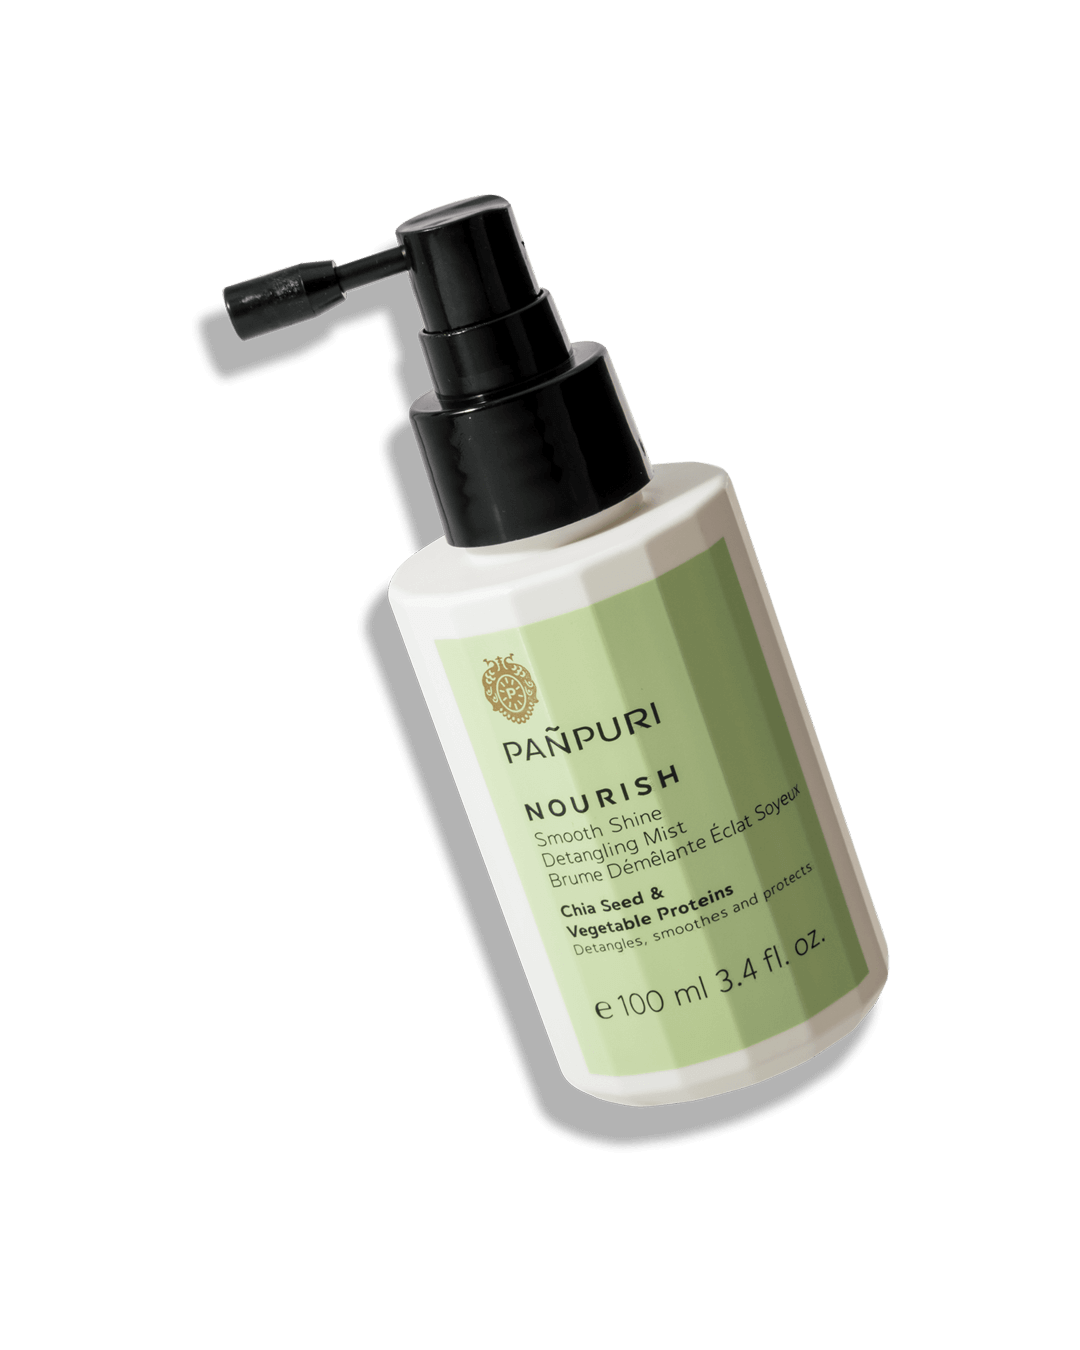 Nourish Smooth Shine Detangling Mist